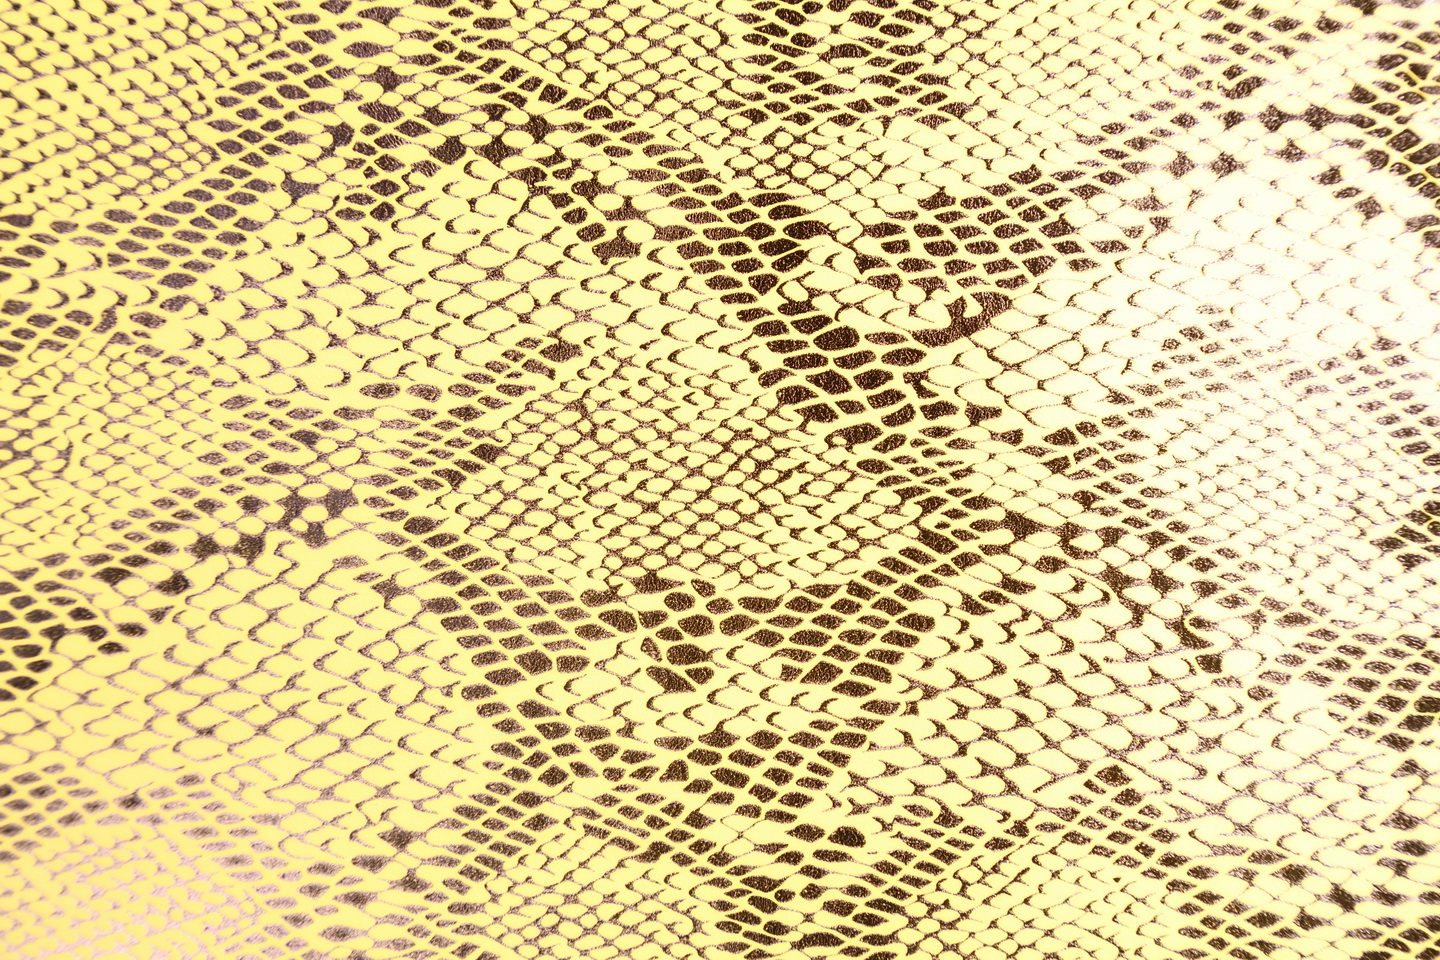 Snake Skin Print Pu Leather-Edit